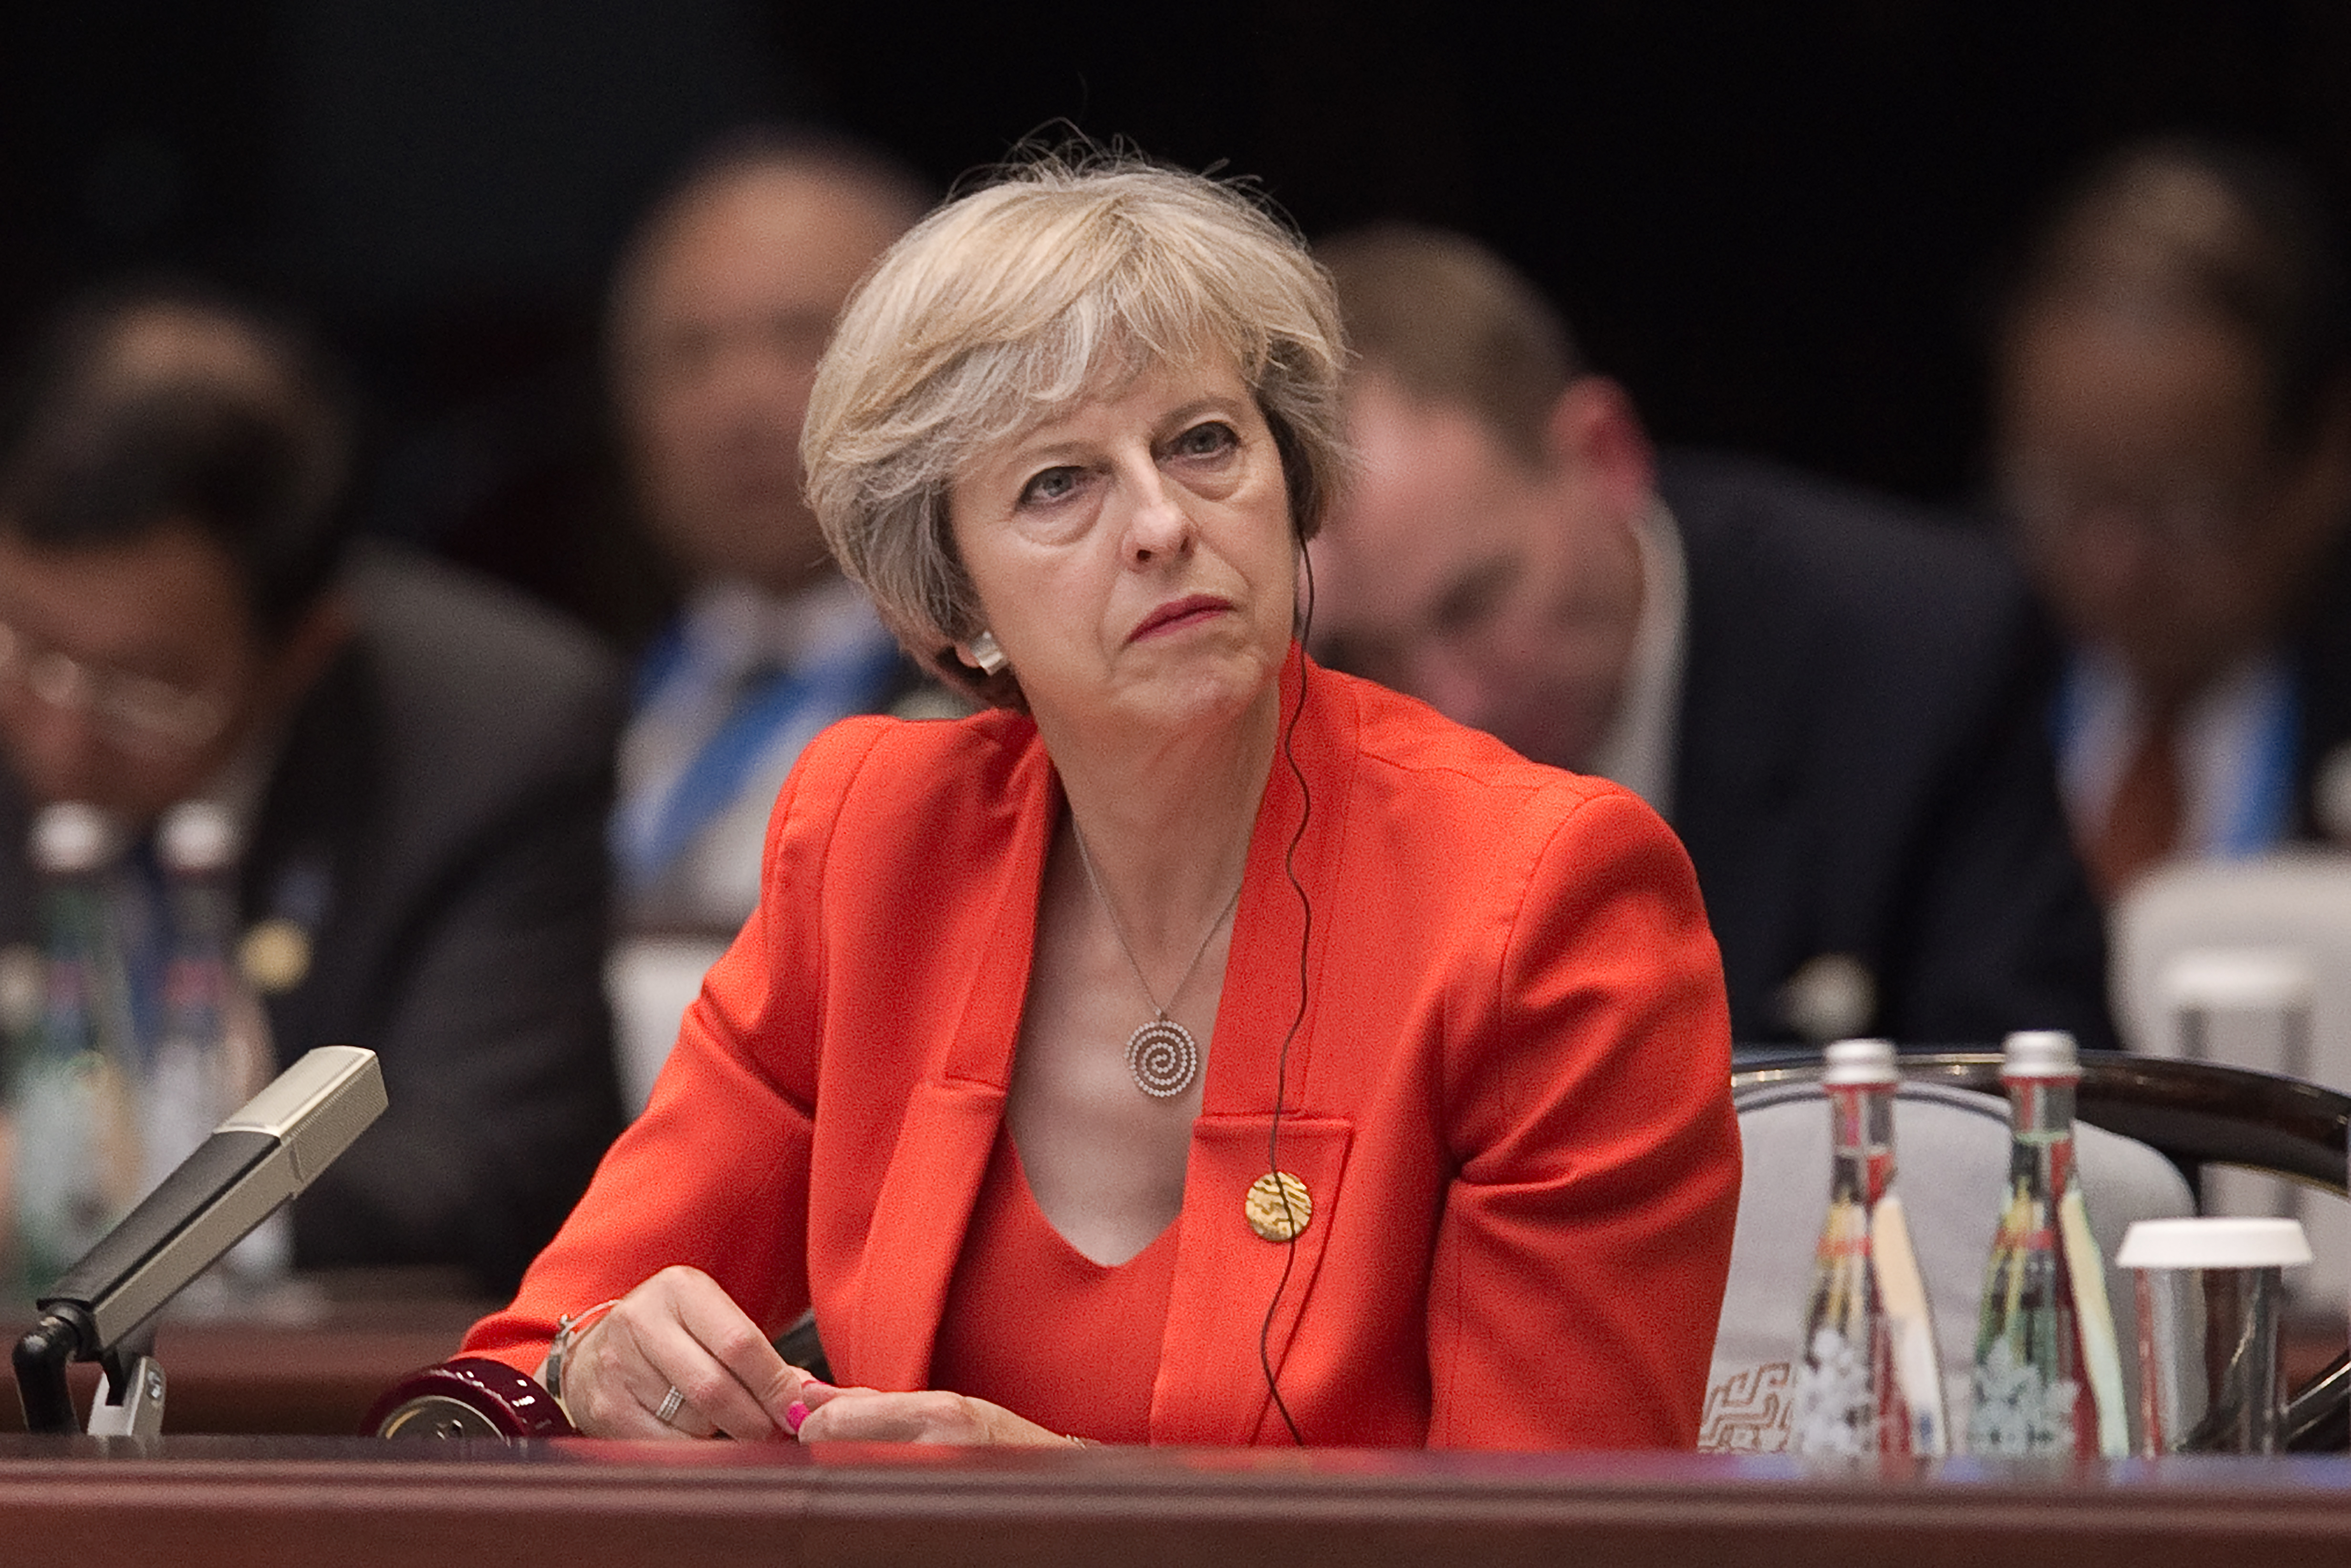 Britain's Prime Minister Theresa May listens to Chinese President Xi Jinping speech during the opening ceremony of the G20 Leaders Summit on September 4, 2016 in Hangzhou, China.